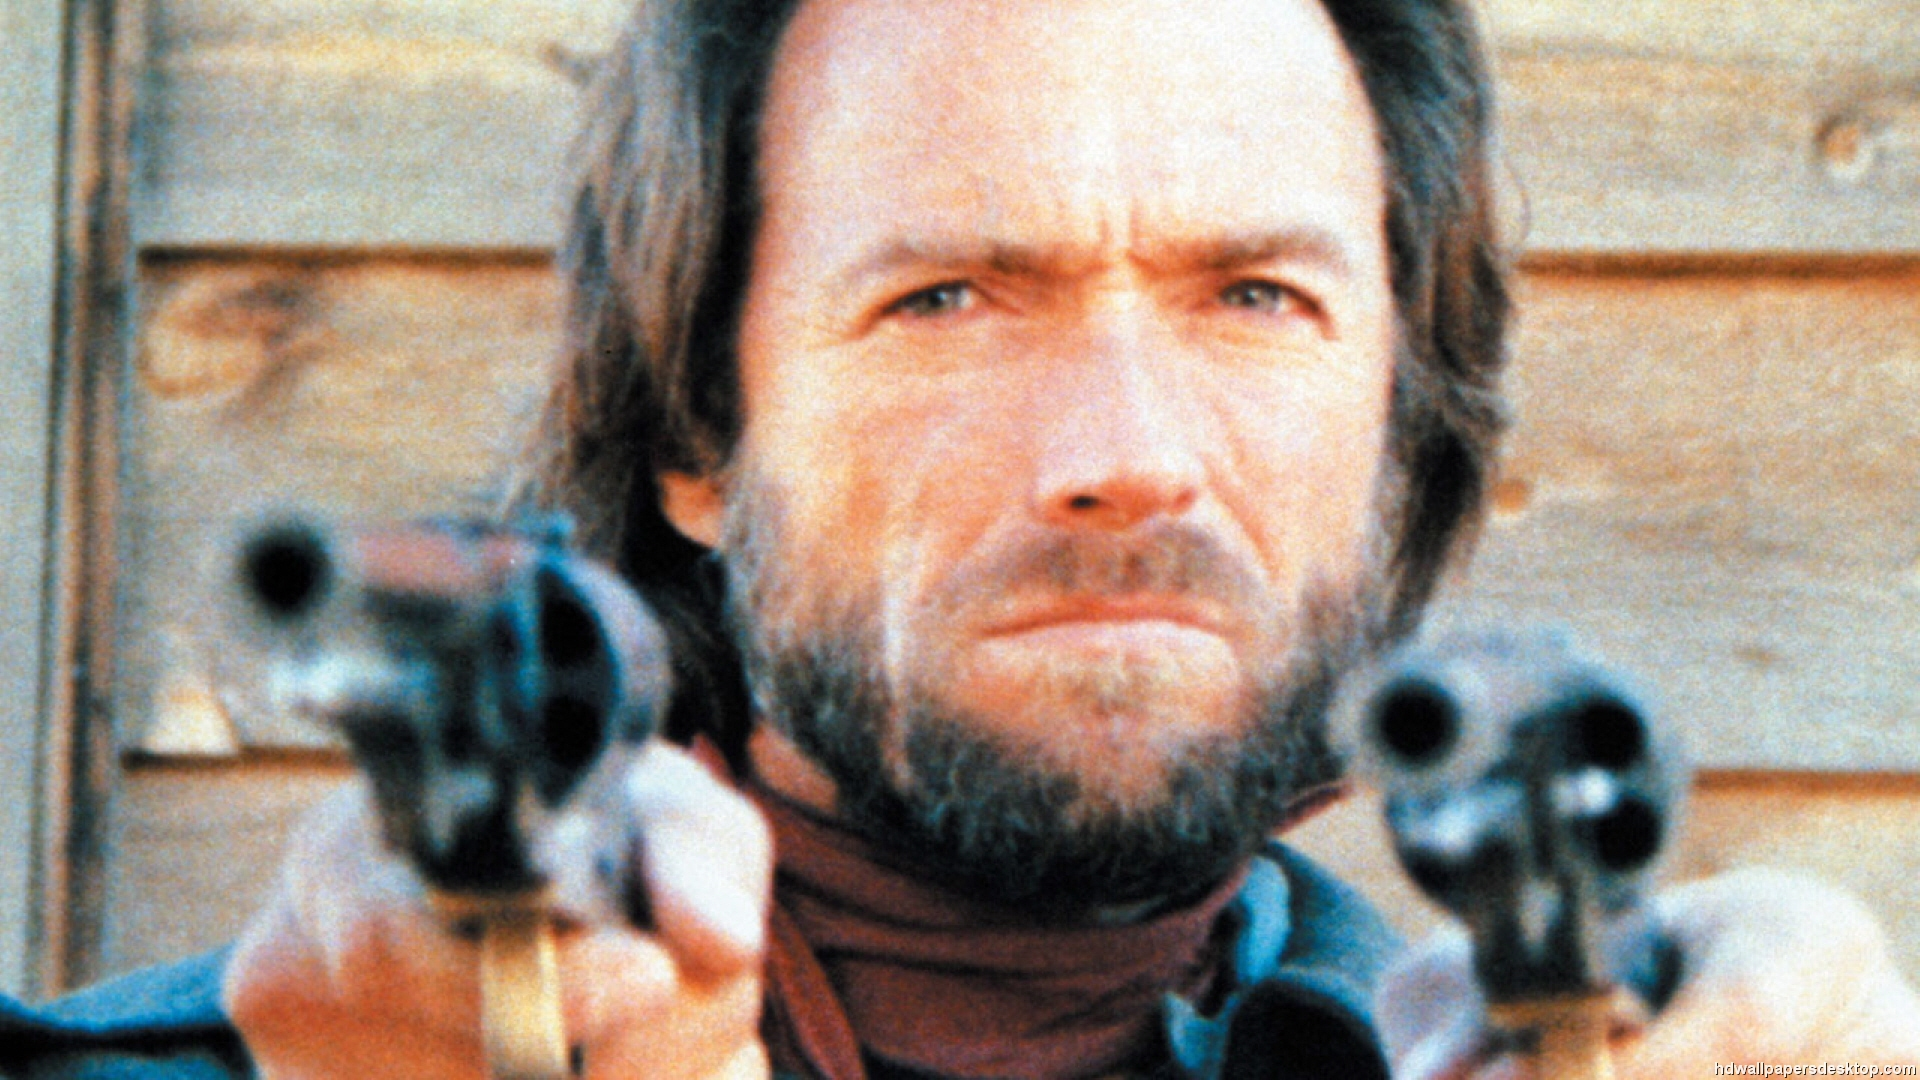 Clint Eastwood Wallpapers 1920x1080 Clint Eastwood Wallpapers 33jpg 1920x1080